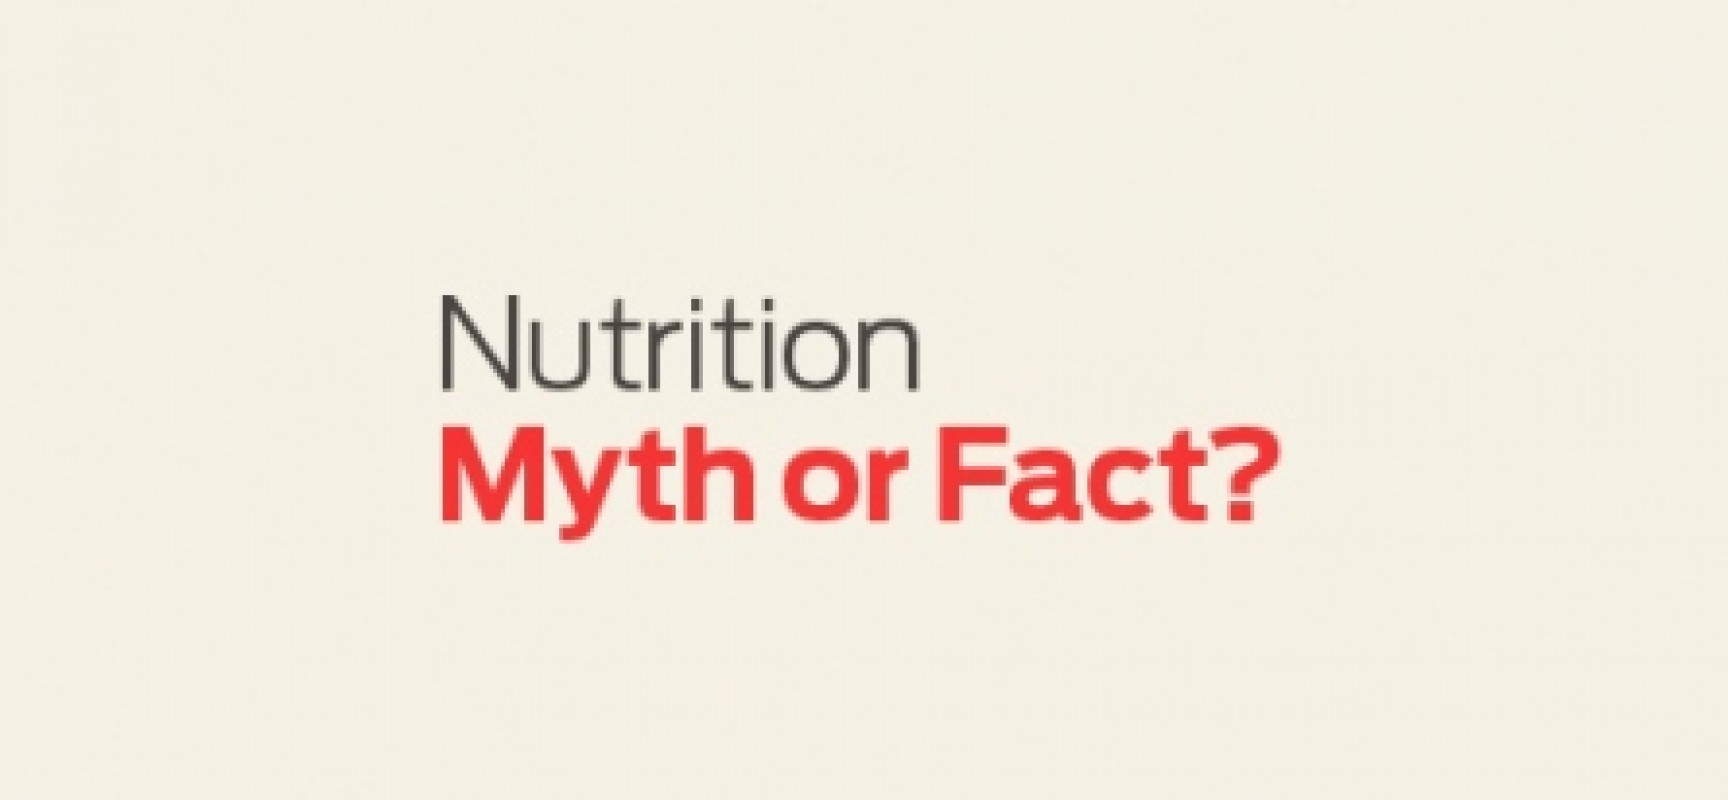 Mainstream Nutrition Myths